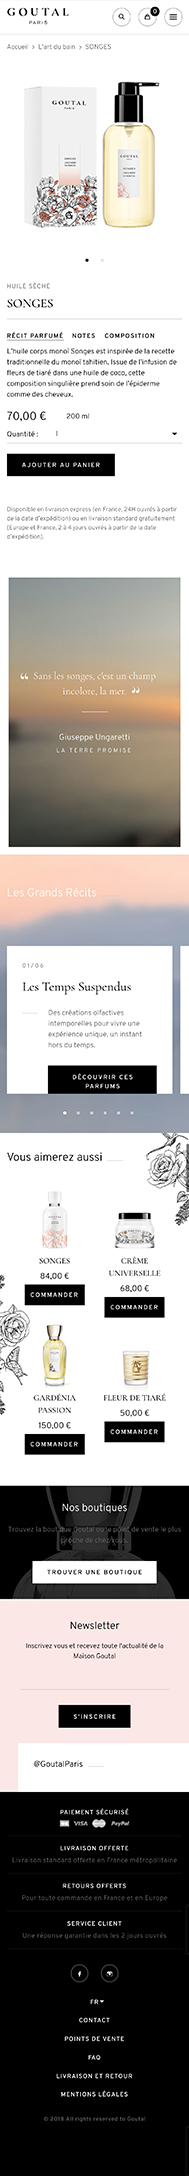 Agence-DND-Creation-Site-ECommerce-Annick-Goutal-21